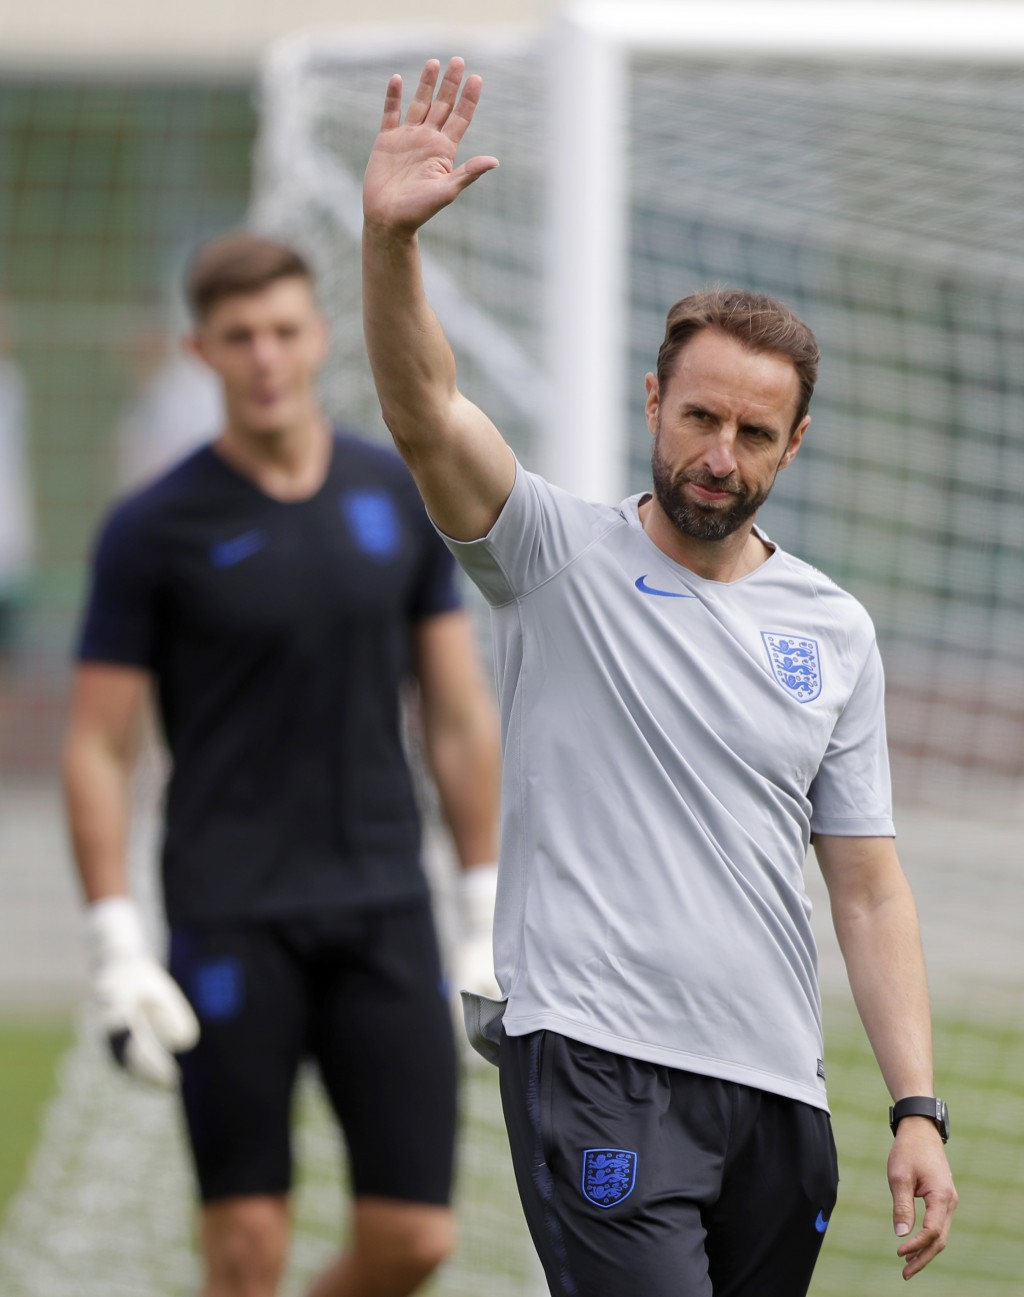 England head coach Gareth Southgate waves to the invited fans during a training session for the England team at the 2018 soccer World Cup, in the Spar